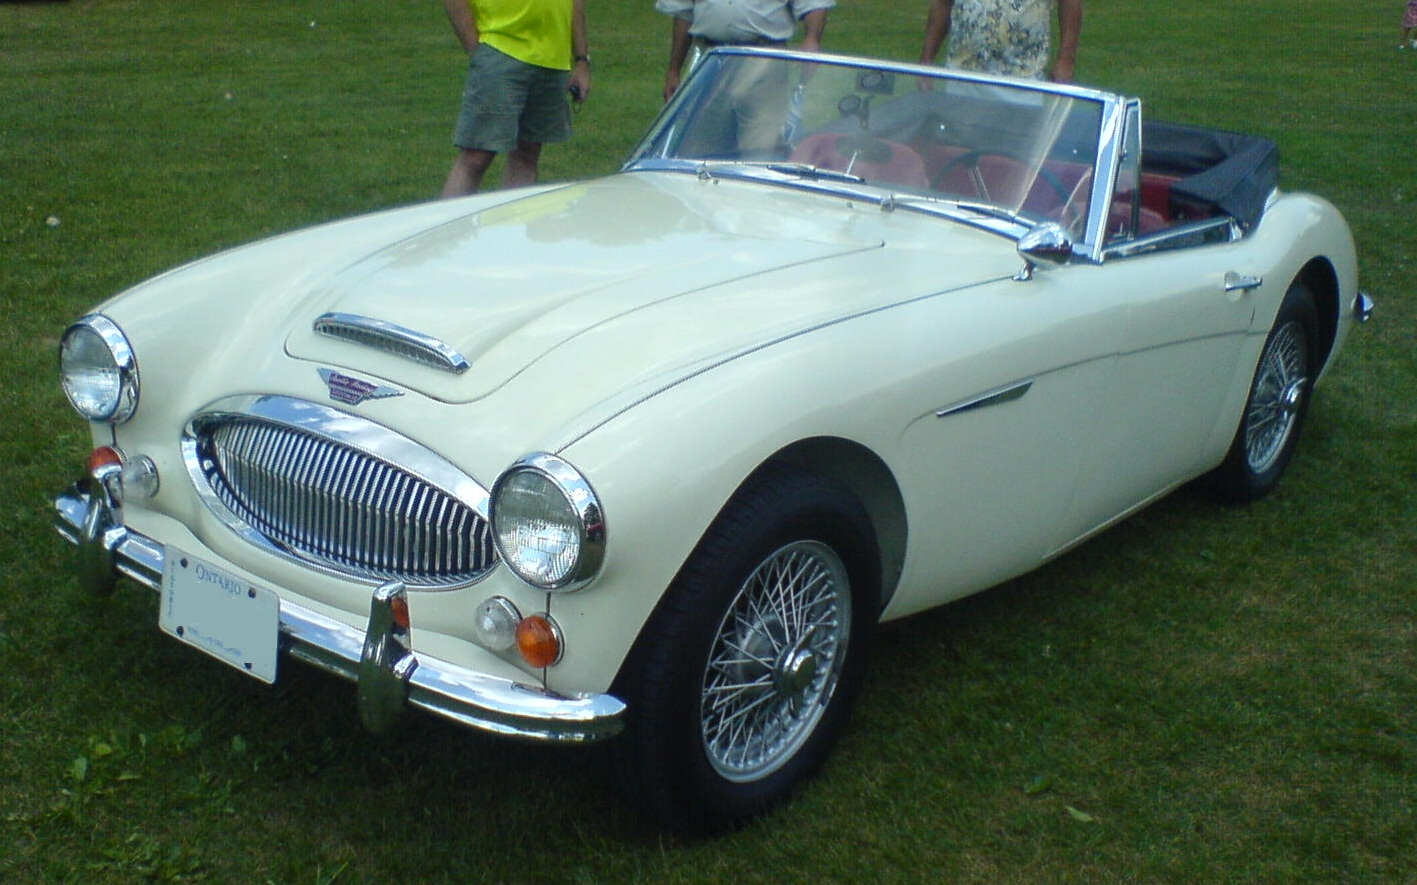 Luxury Old Cars For Sale In Ottawa Vignette - Classic Cars Ideas ...